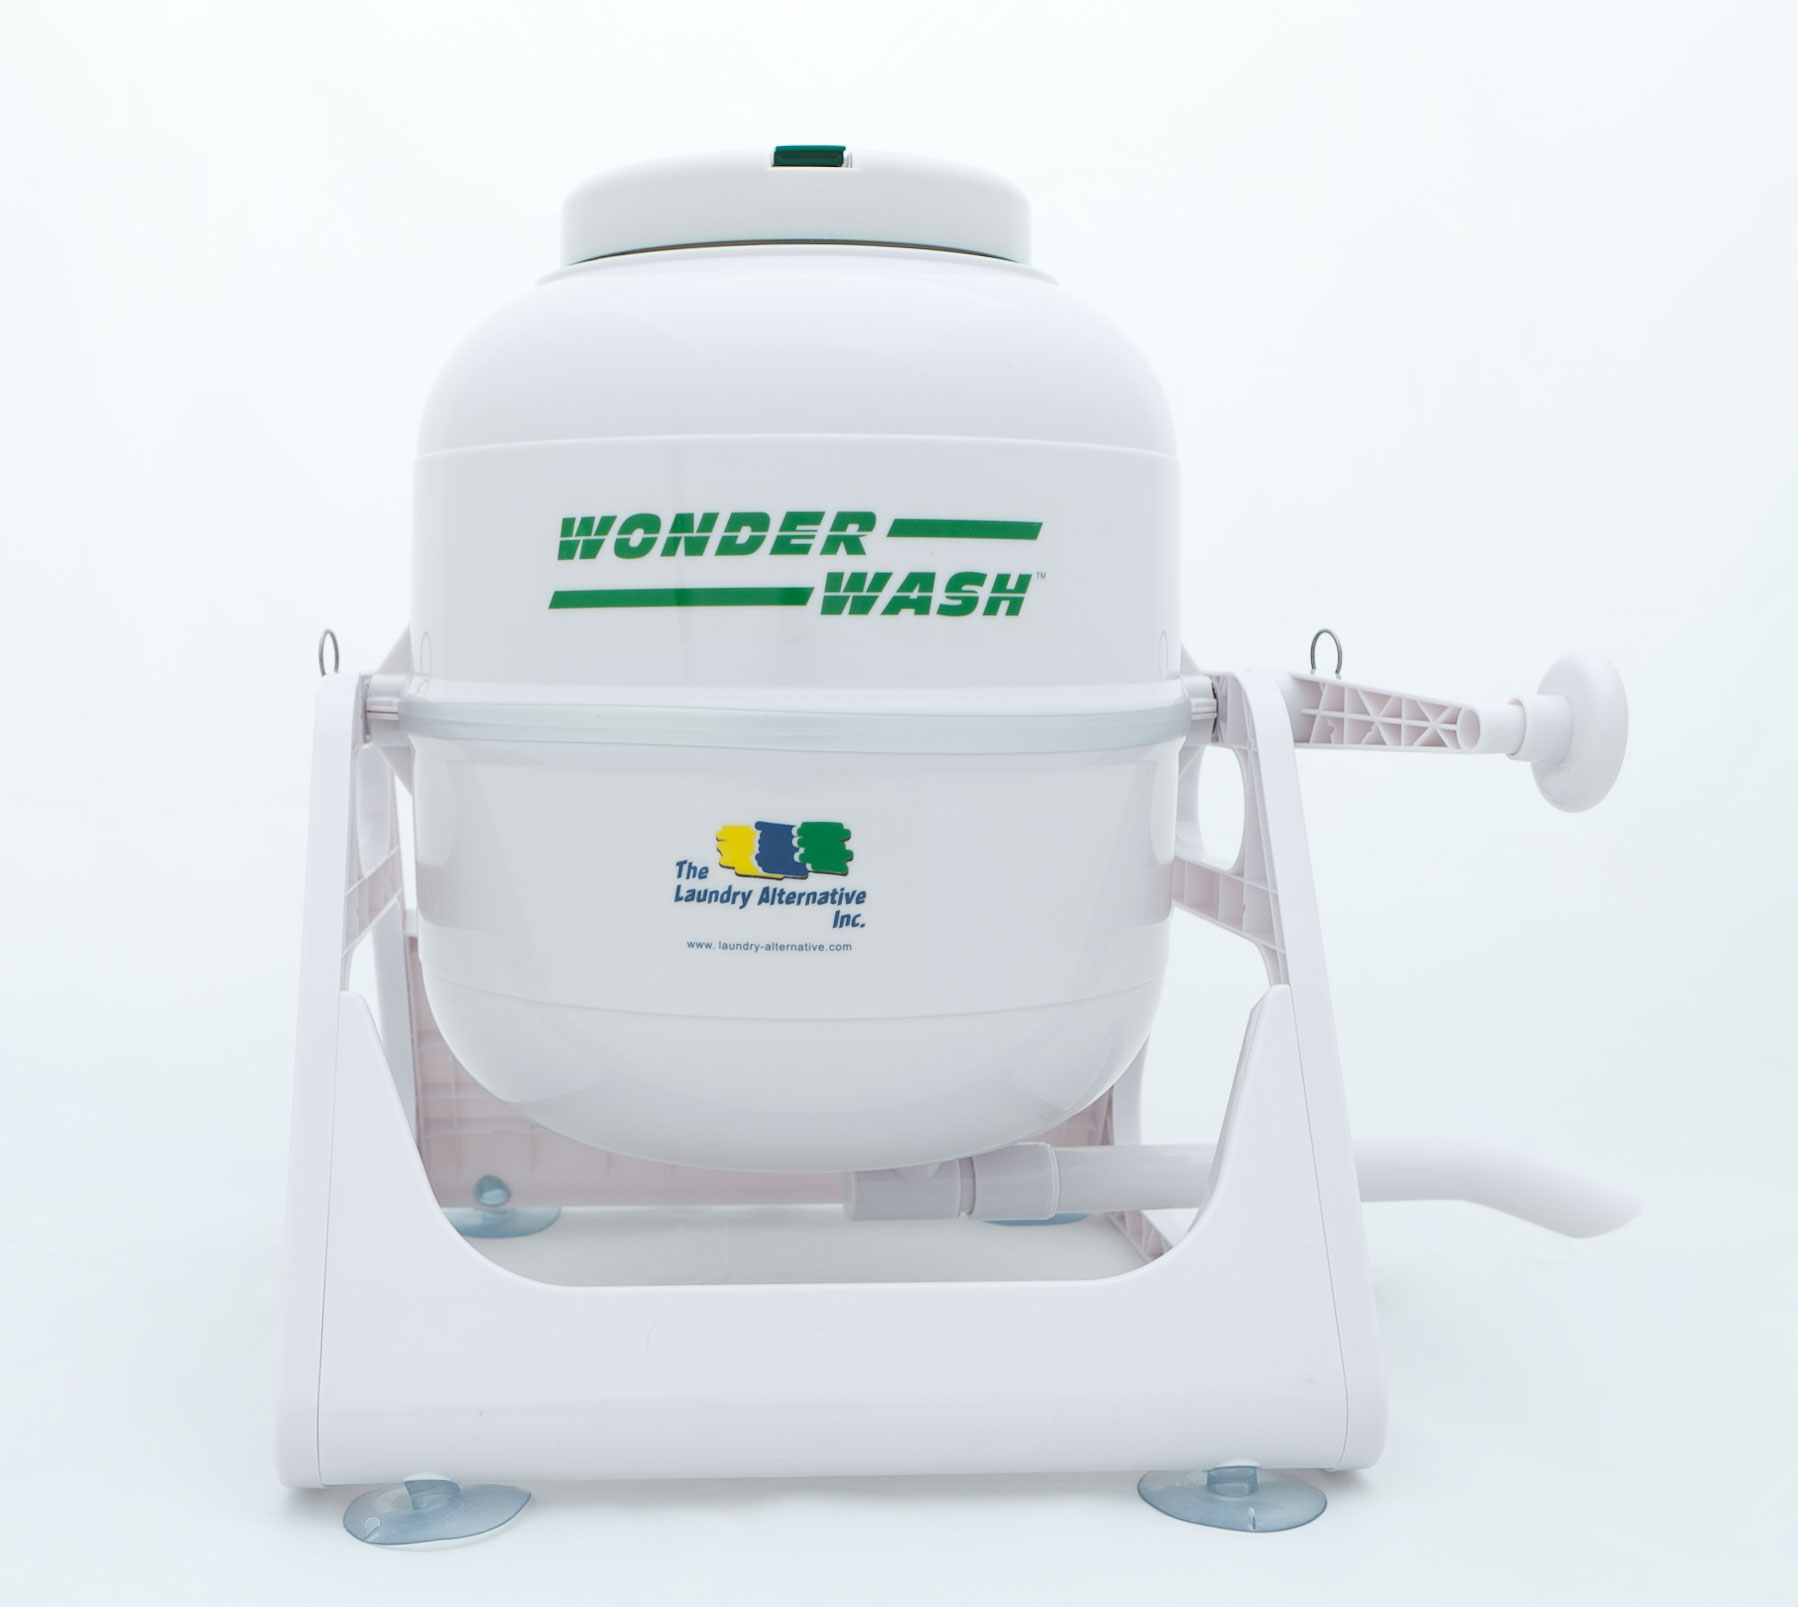 Wonder Wash Portable Washing Machine - Clean Dirty Clothes in 2 Minutes